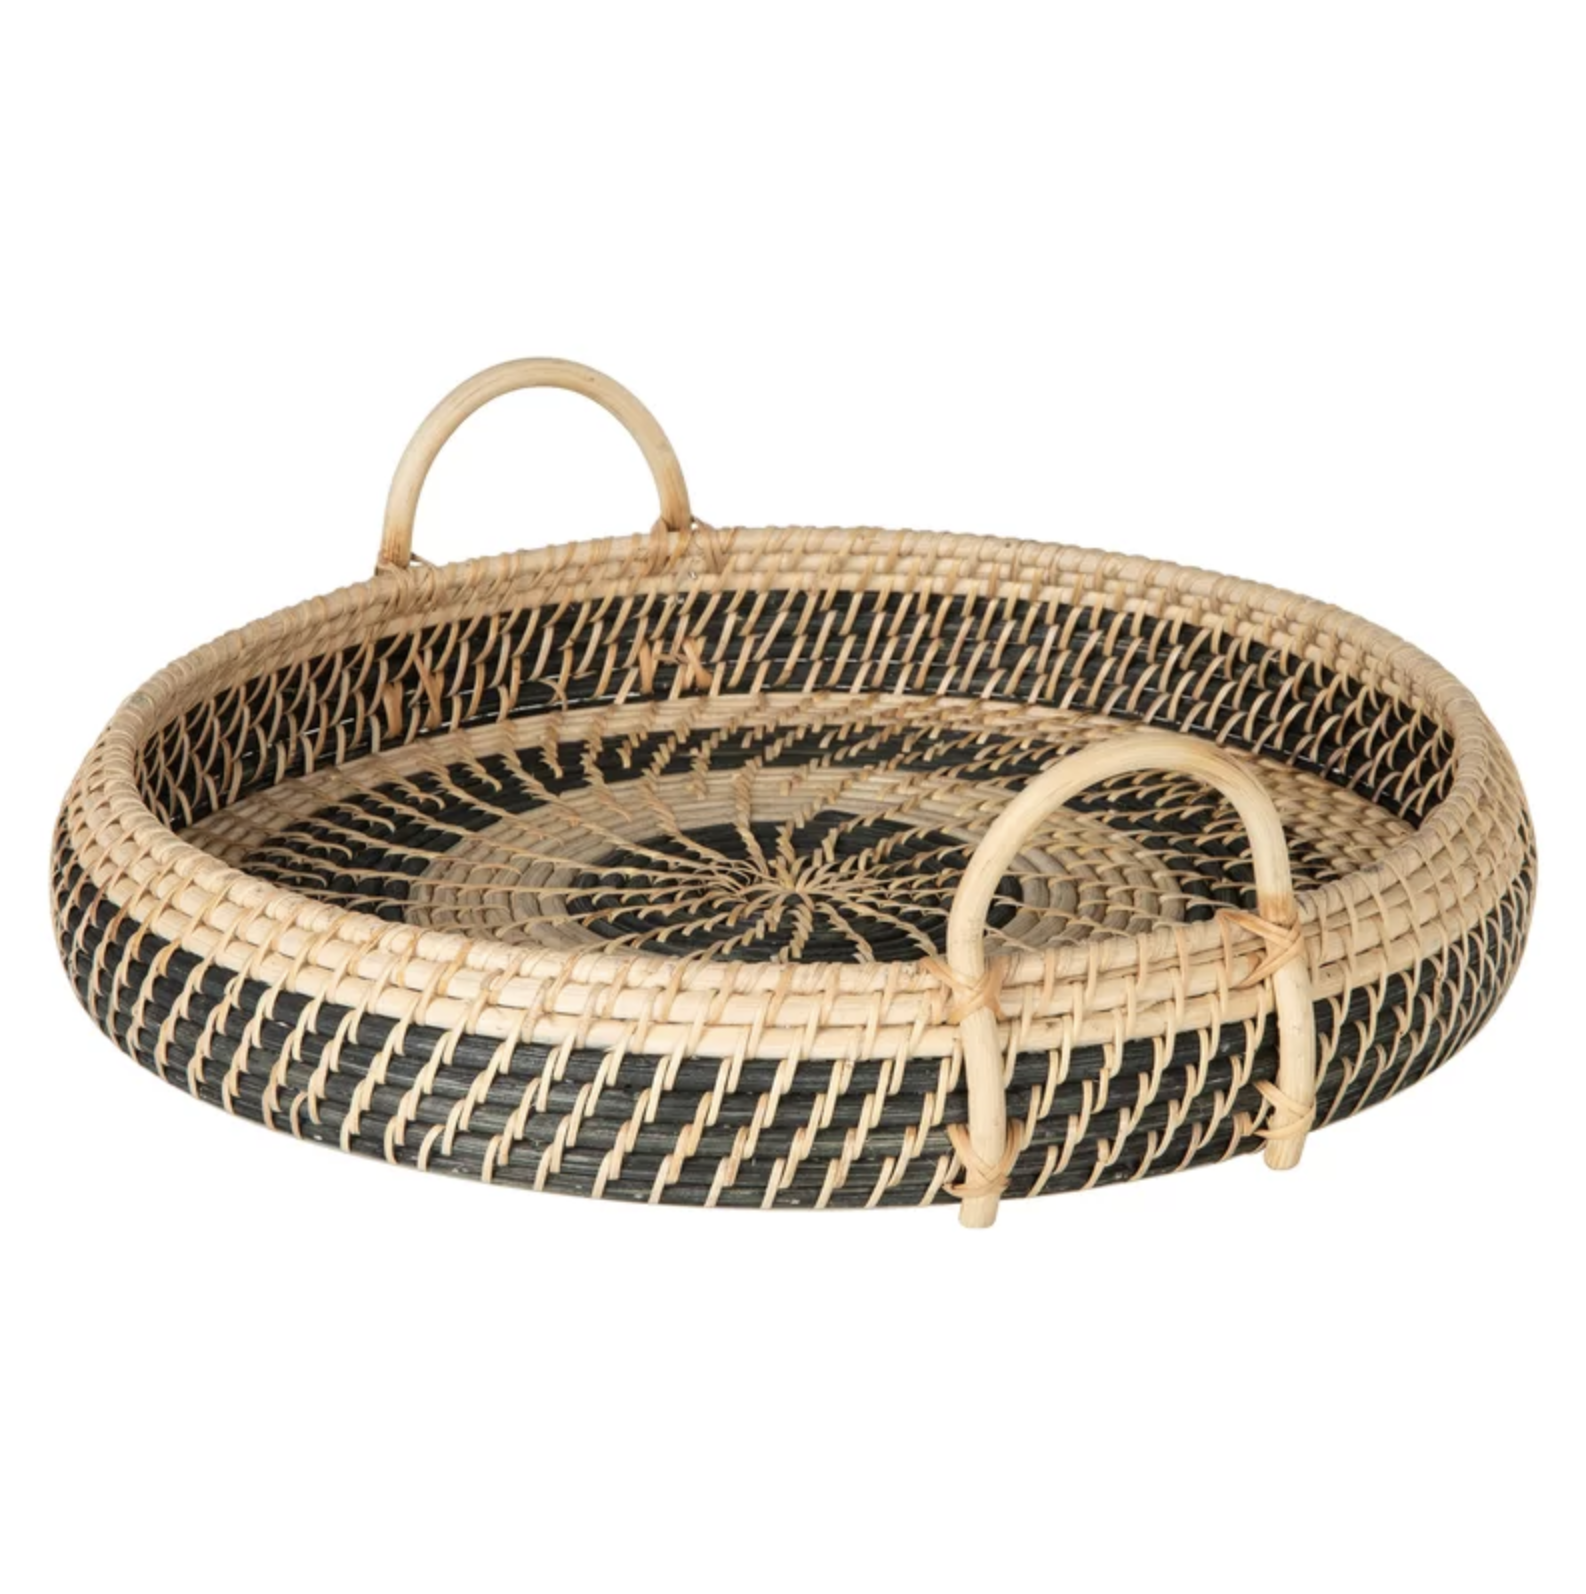 Natural and Black Woven Tray Basket with Handles | Shop Miranda Schroeder Blog